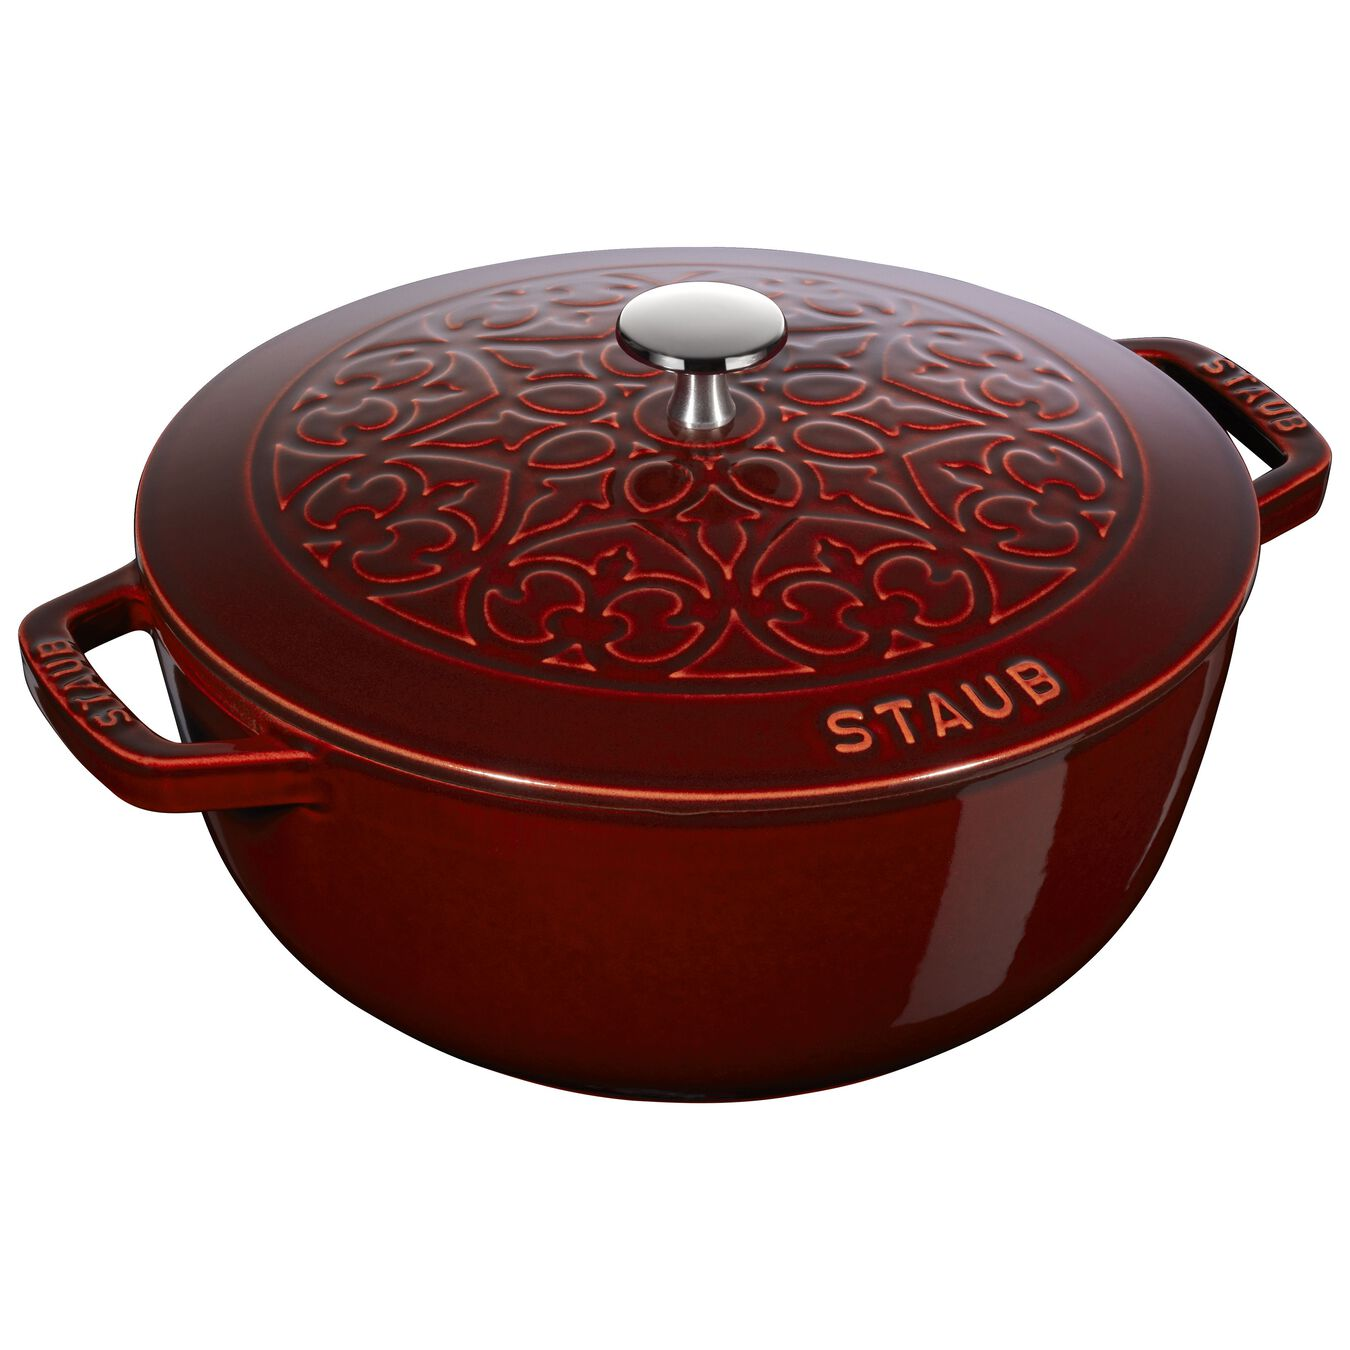 5 l Cast iron round Cocotte, Grenadine-Red,,large 1